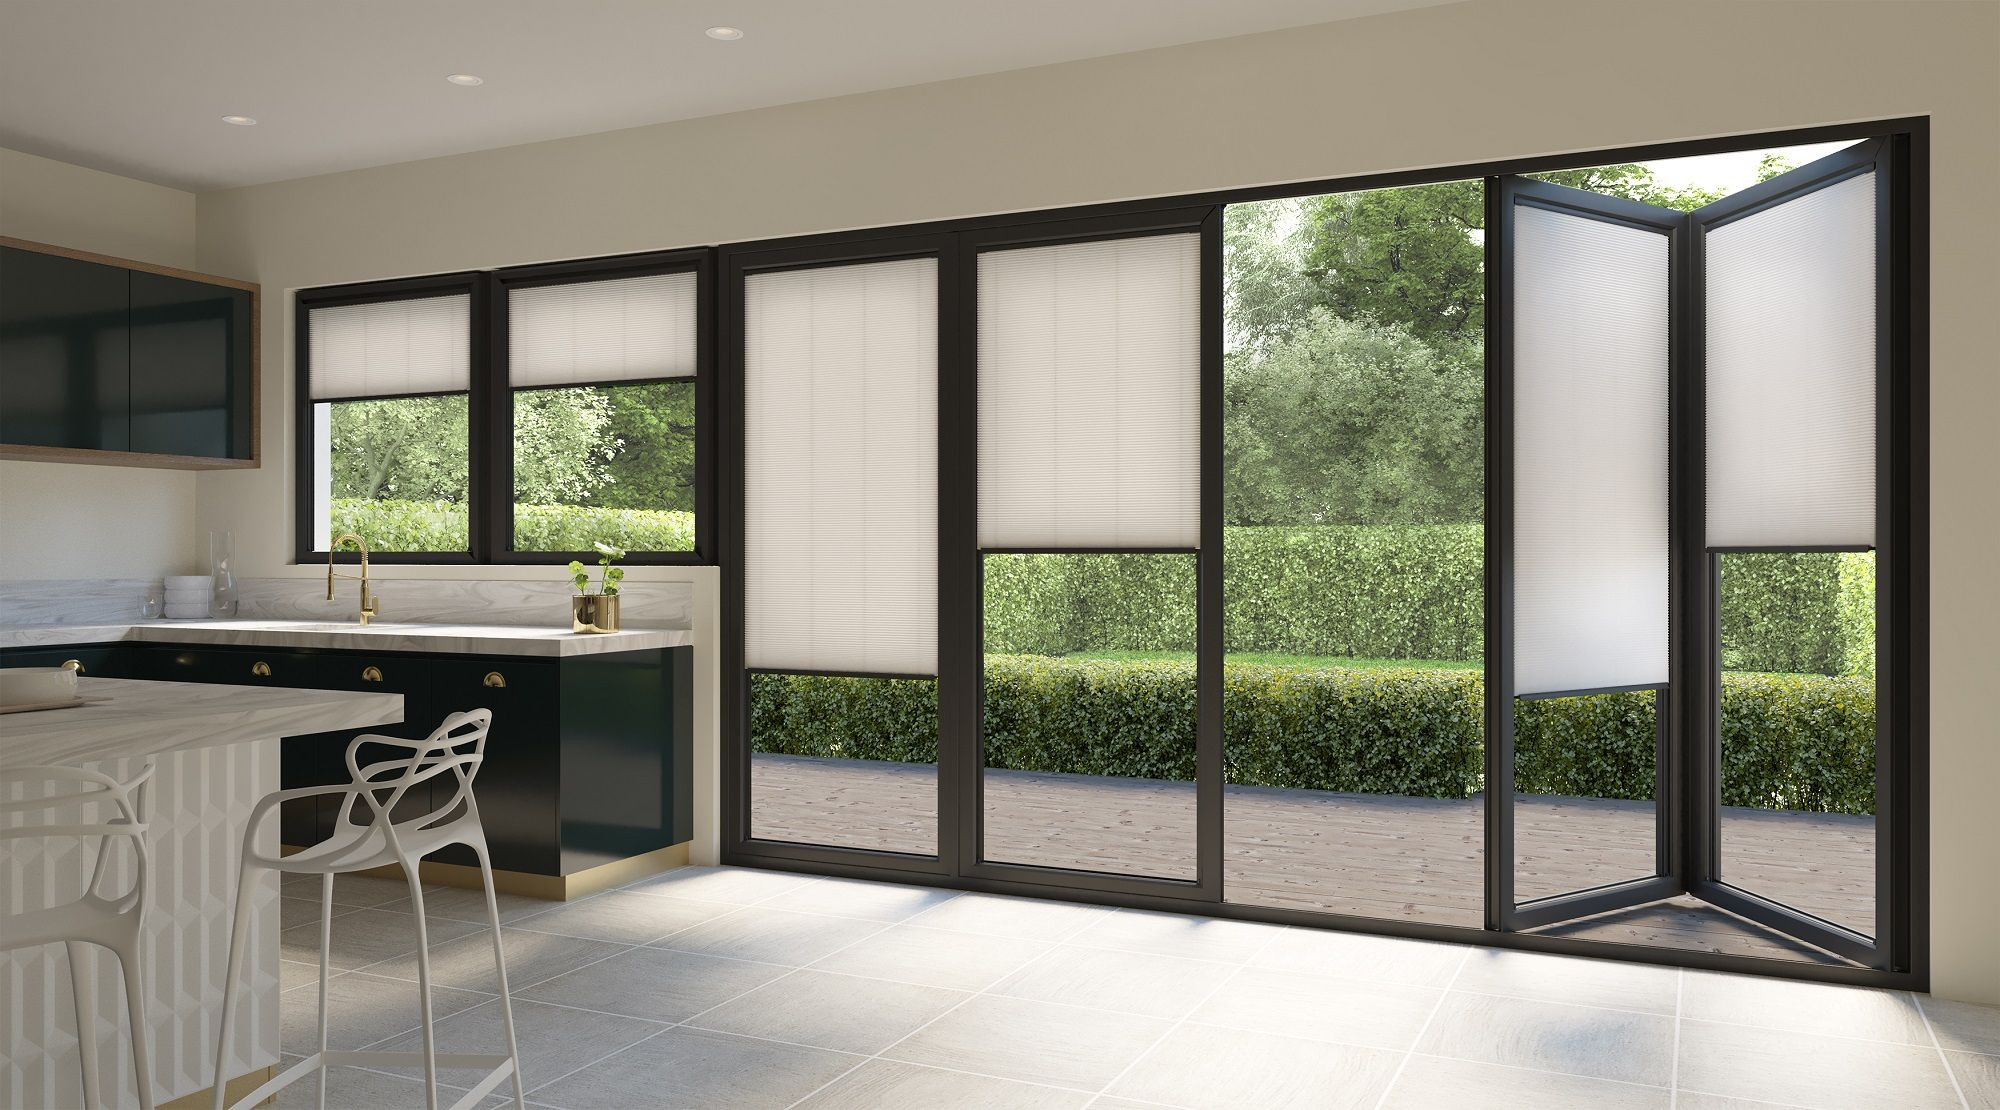 Style Studio Intu Hive Blinds Kitchen Blinds Neutral Blinds